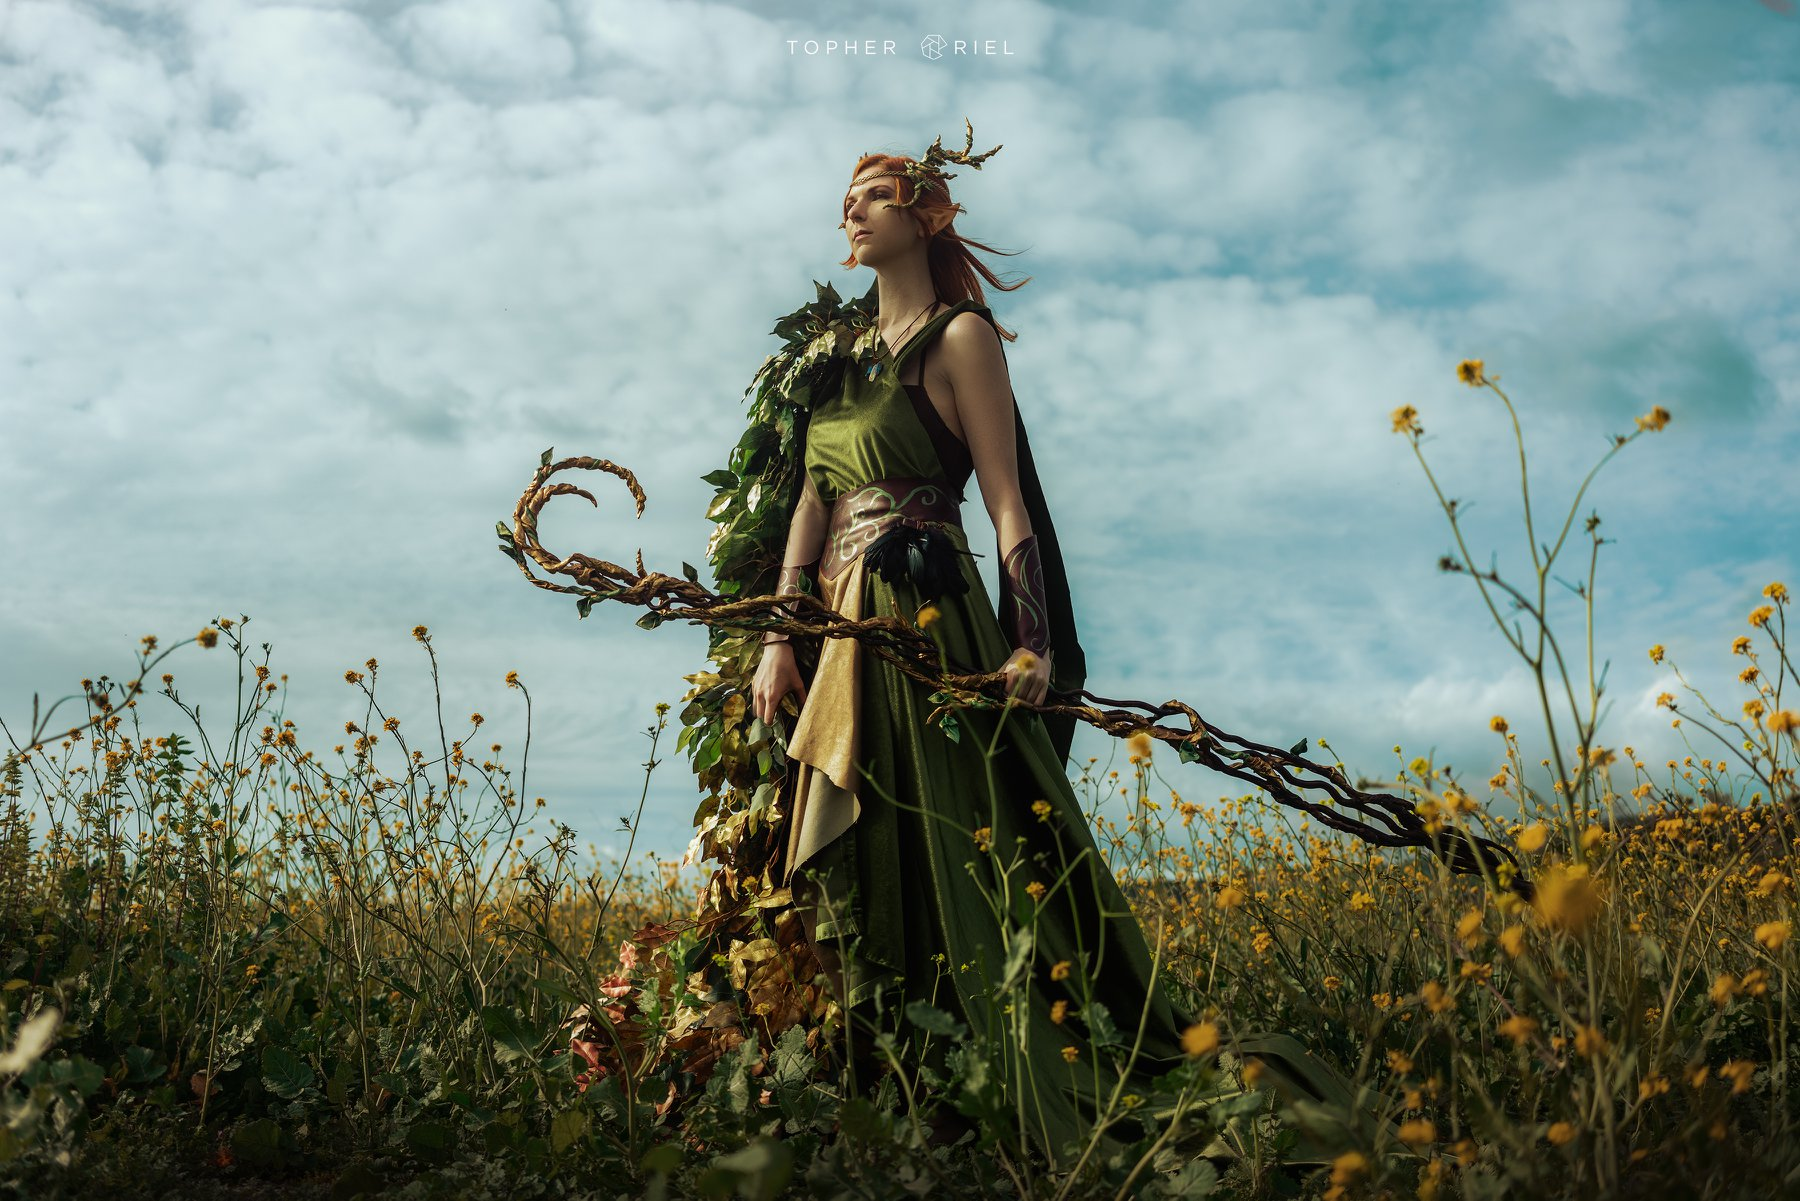 Keyleth By Arkady Cosplay Critical Role Cosplay With the help of vox machina, keyleth completed her rite of passage and learned about the world around her and its people. keyleth by arkady cosplay critical role cosplay